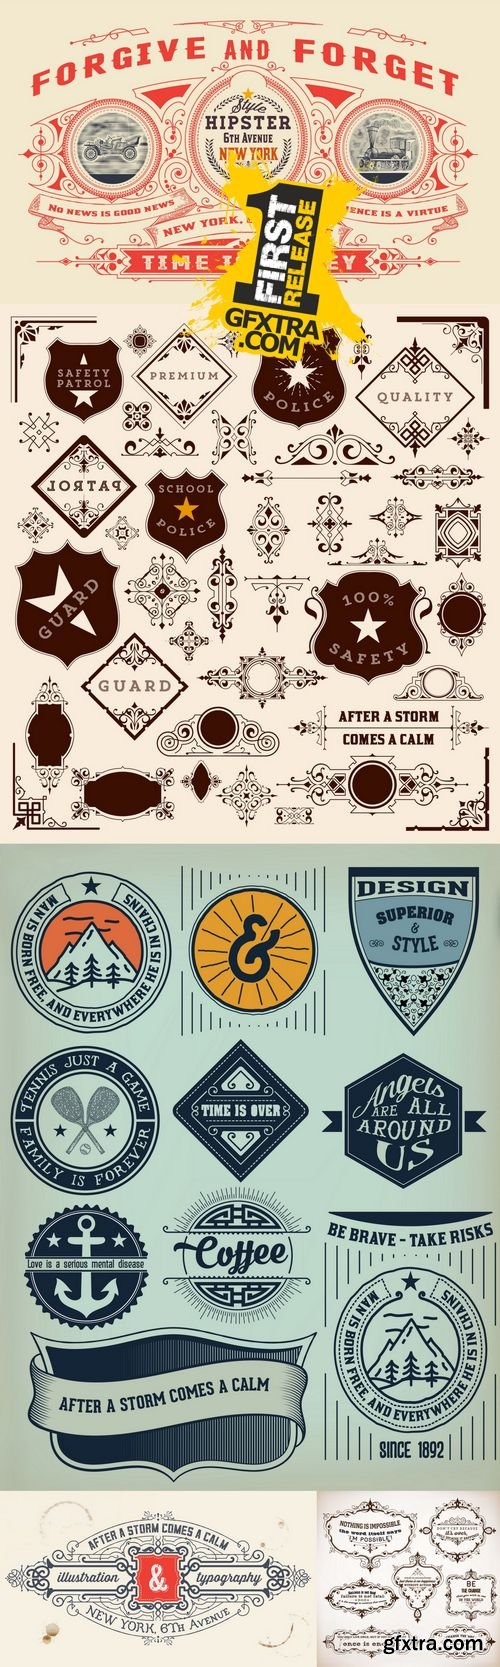 Vector - Vintage Design Elements